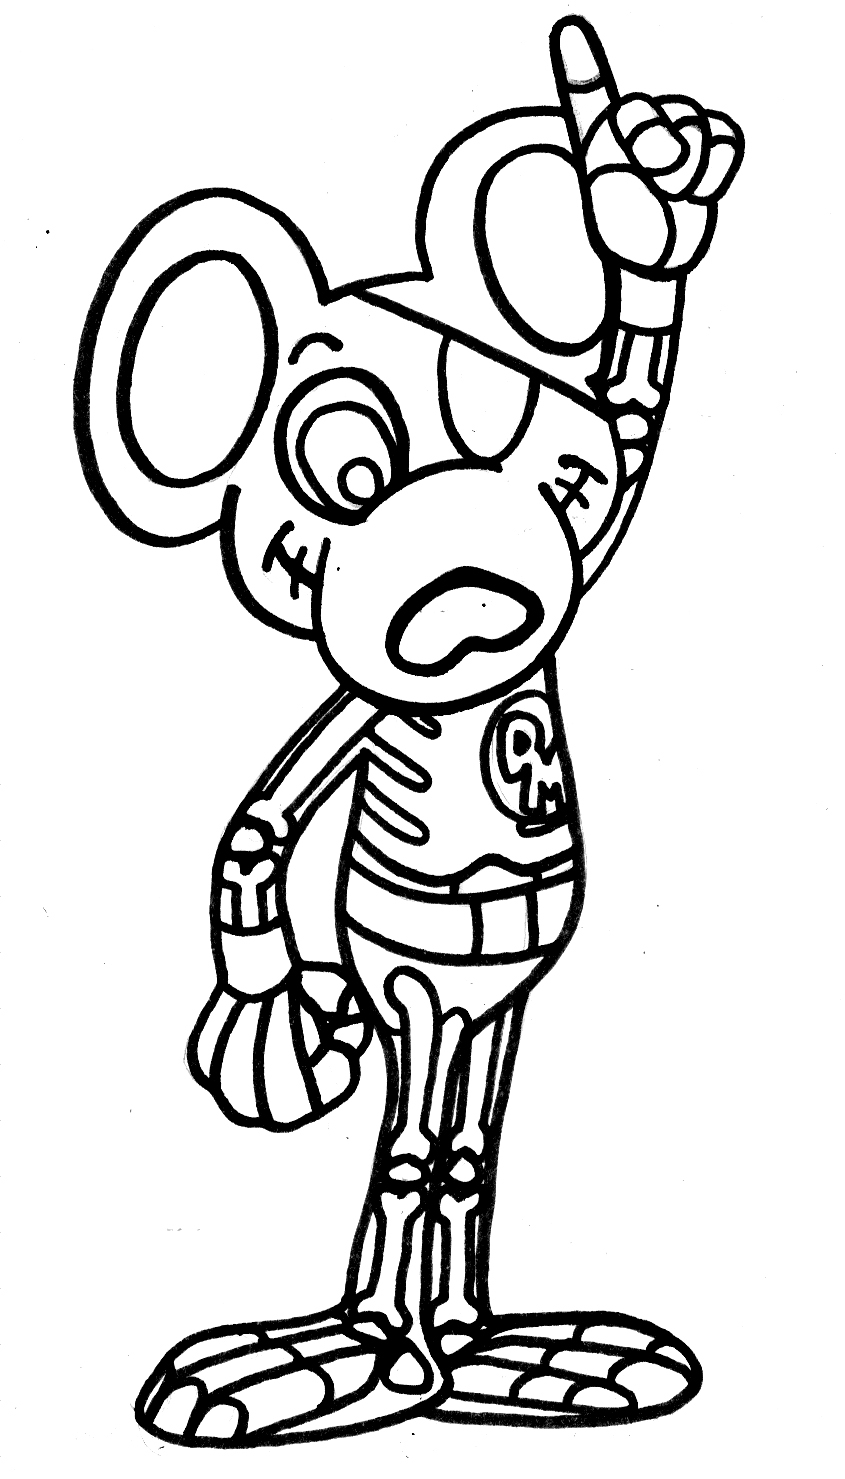 danger mouse coloring pages - photo#4